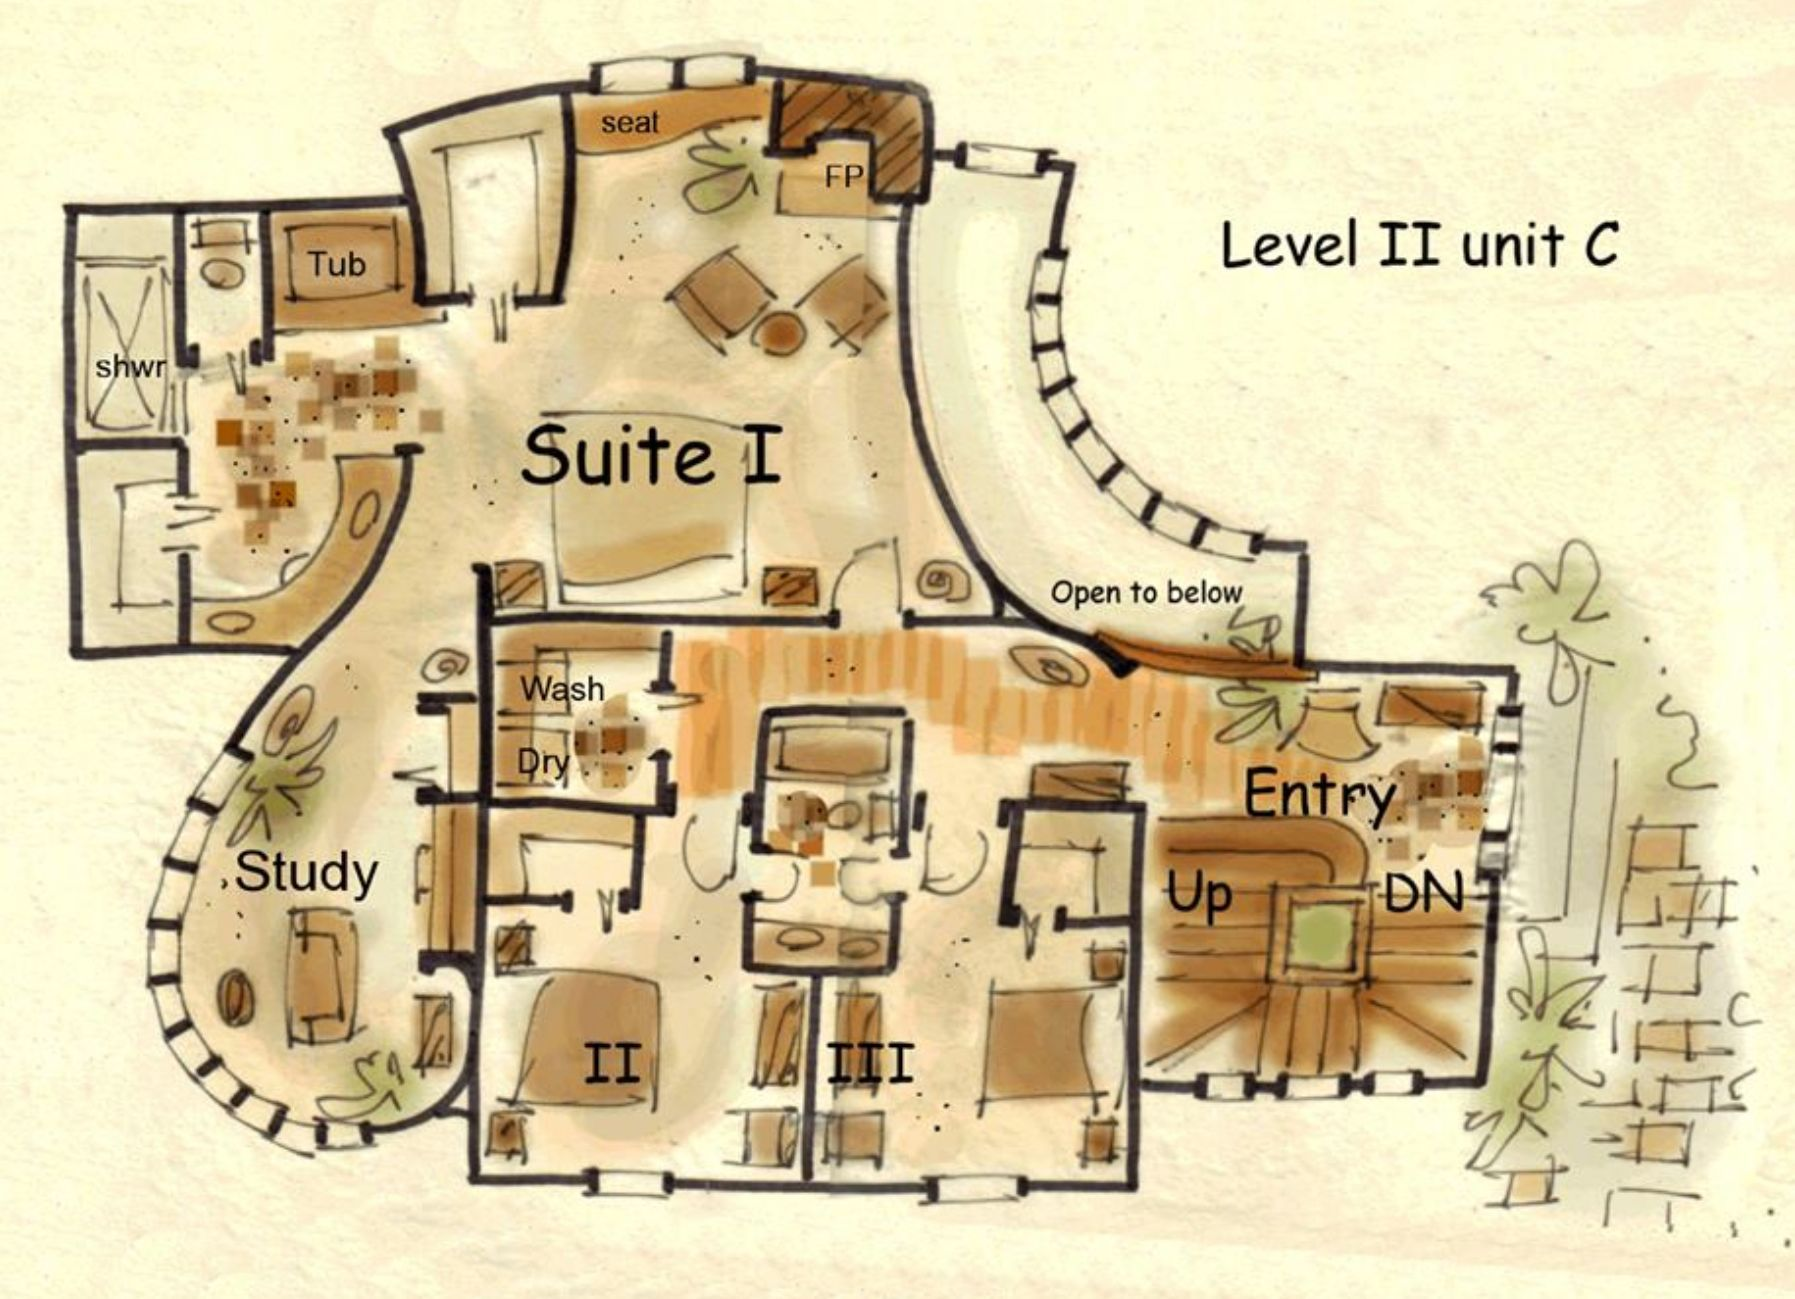 Fairy Tale House Plan Unique House Plans Exclusive Collection Unique House Plans Cob House Plans House Plans